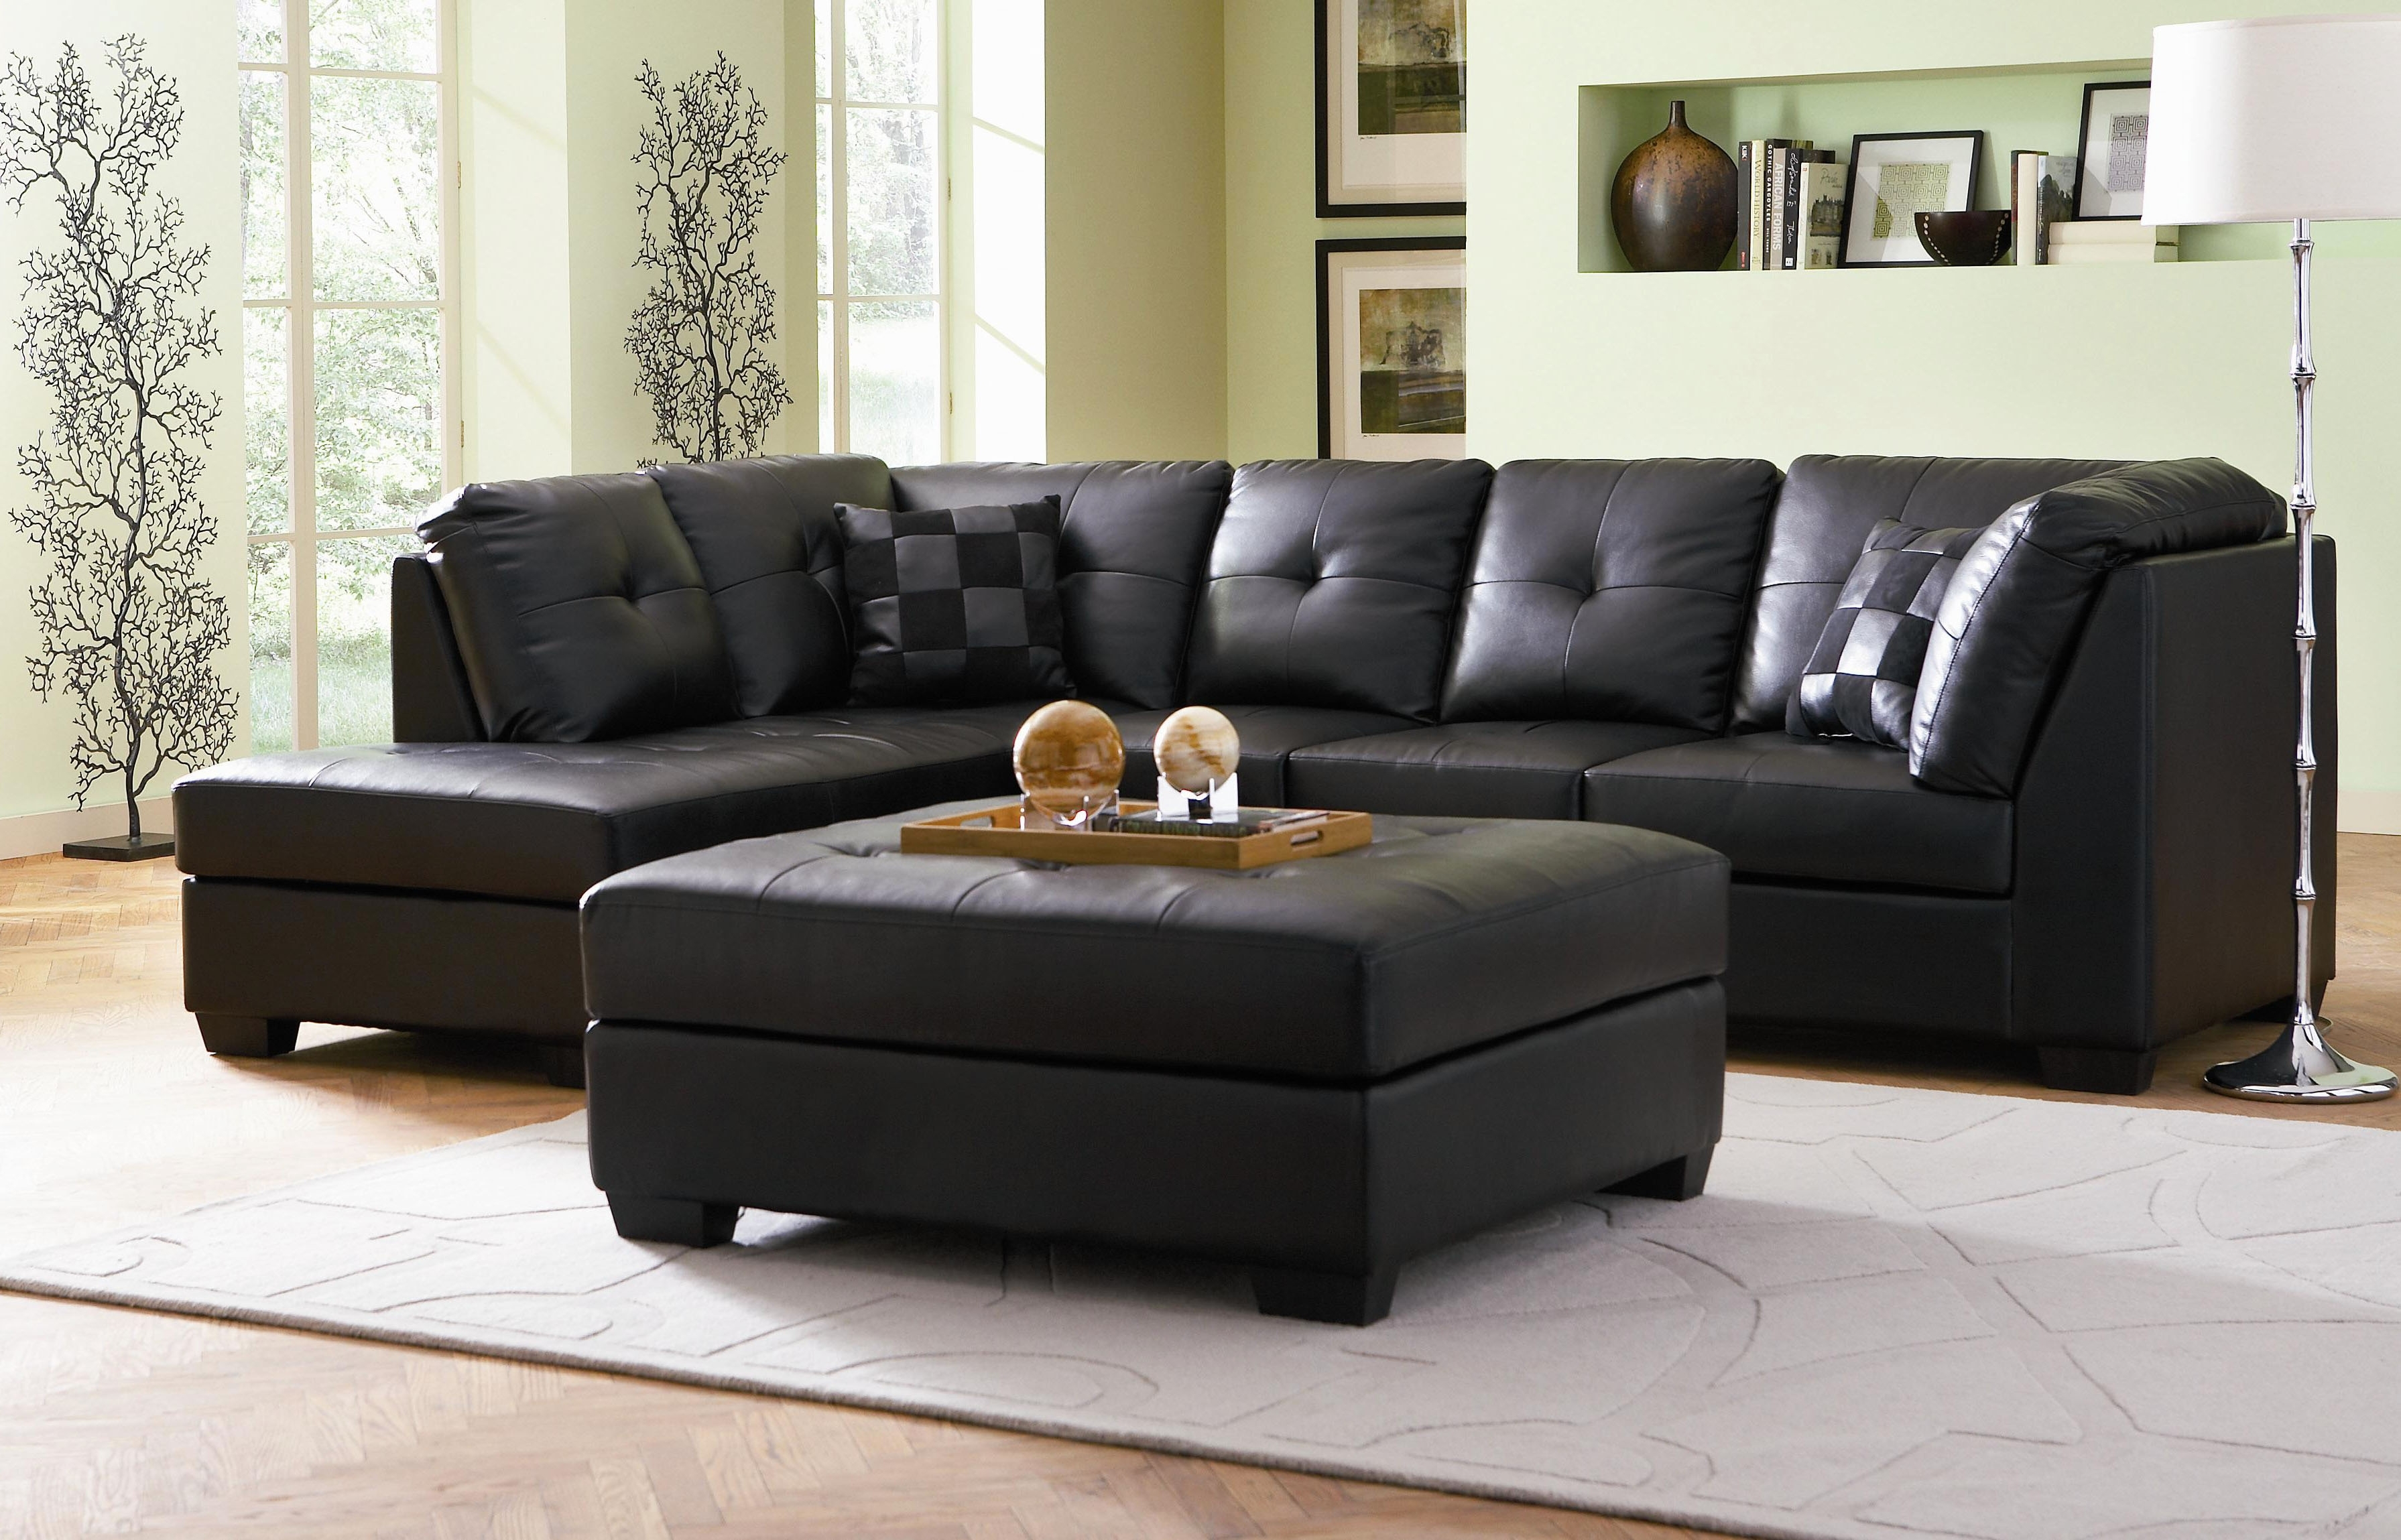 Leather Sectional Sofa For Small Living Room In Black Color With Intended For Leather Sectional Sofas With Ottoman (View 6 of 10)